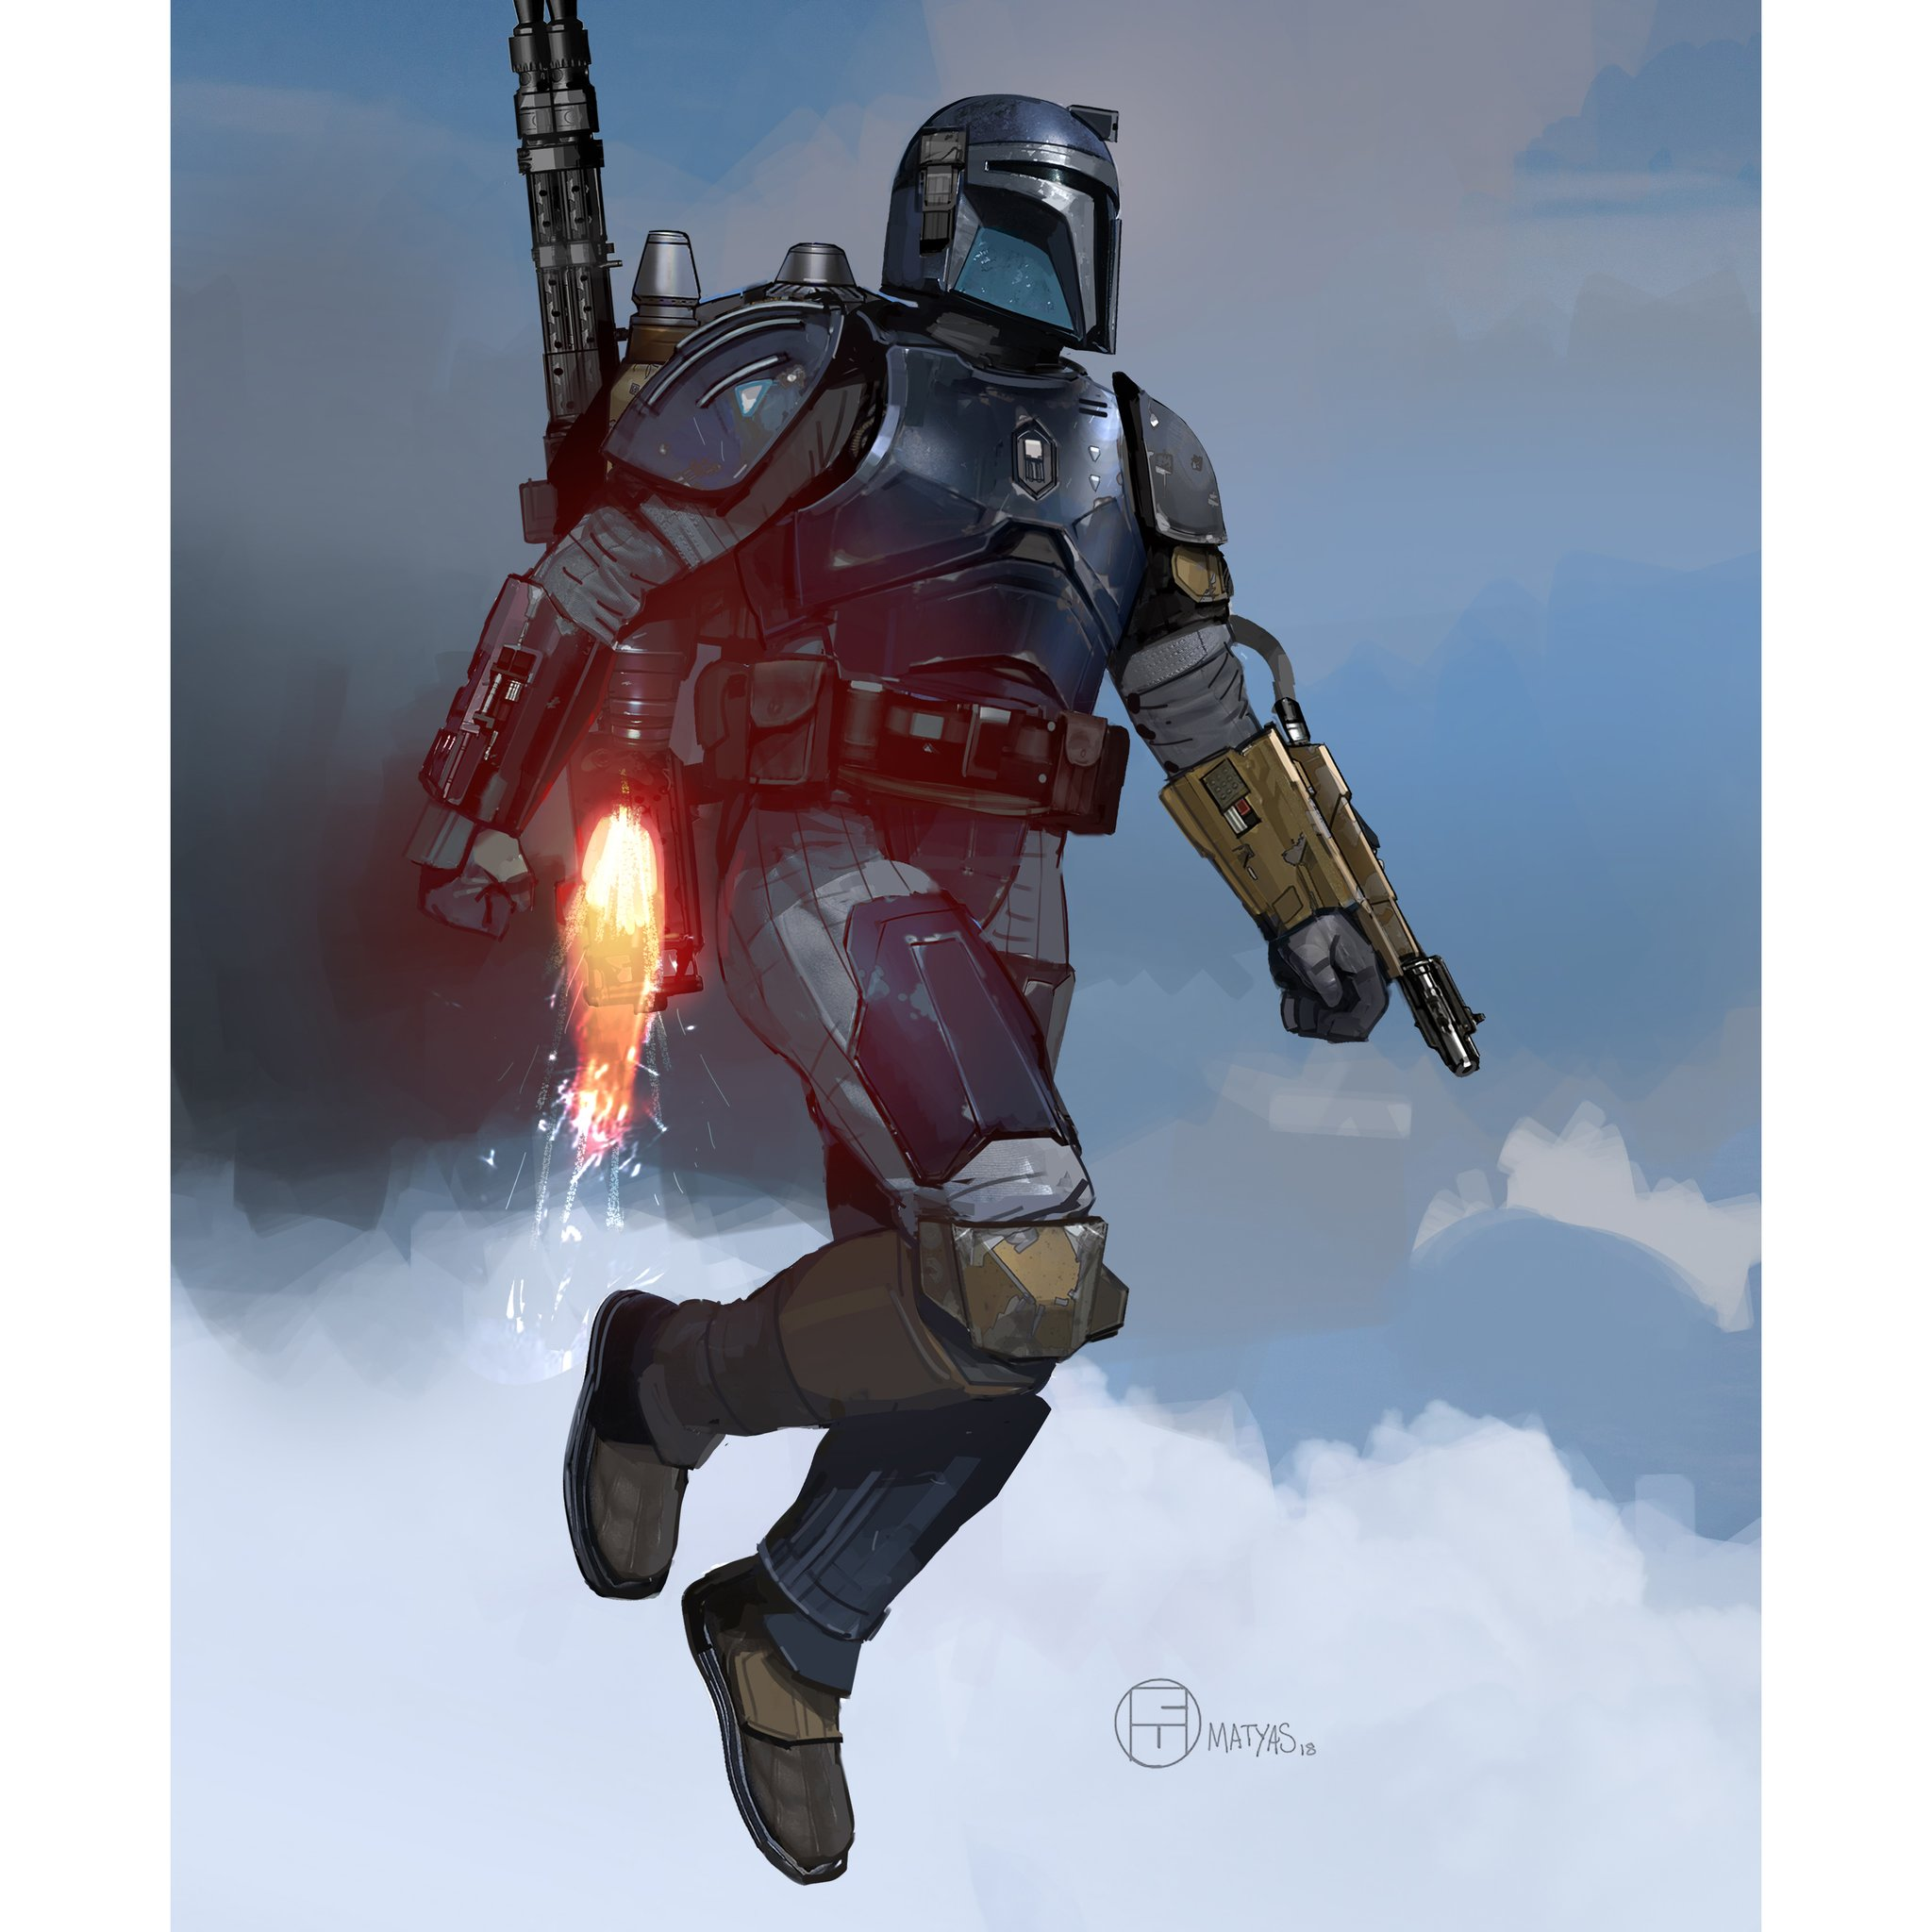 New Reveal Of The Heavy Duty Mandalorian's Gripping Concept Art from The Mandalorian Show - The Illuminerdi